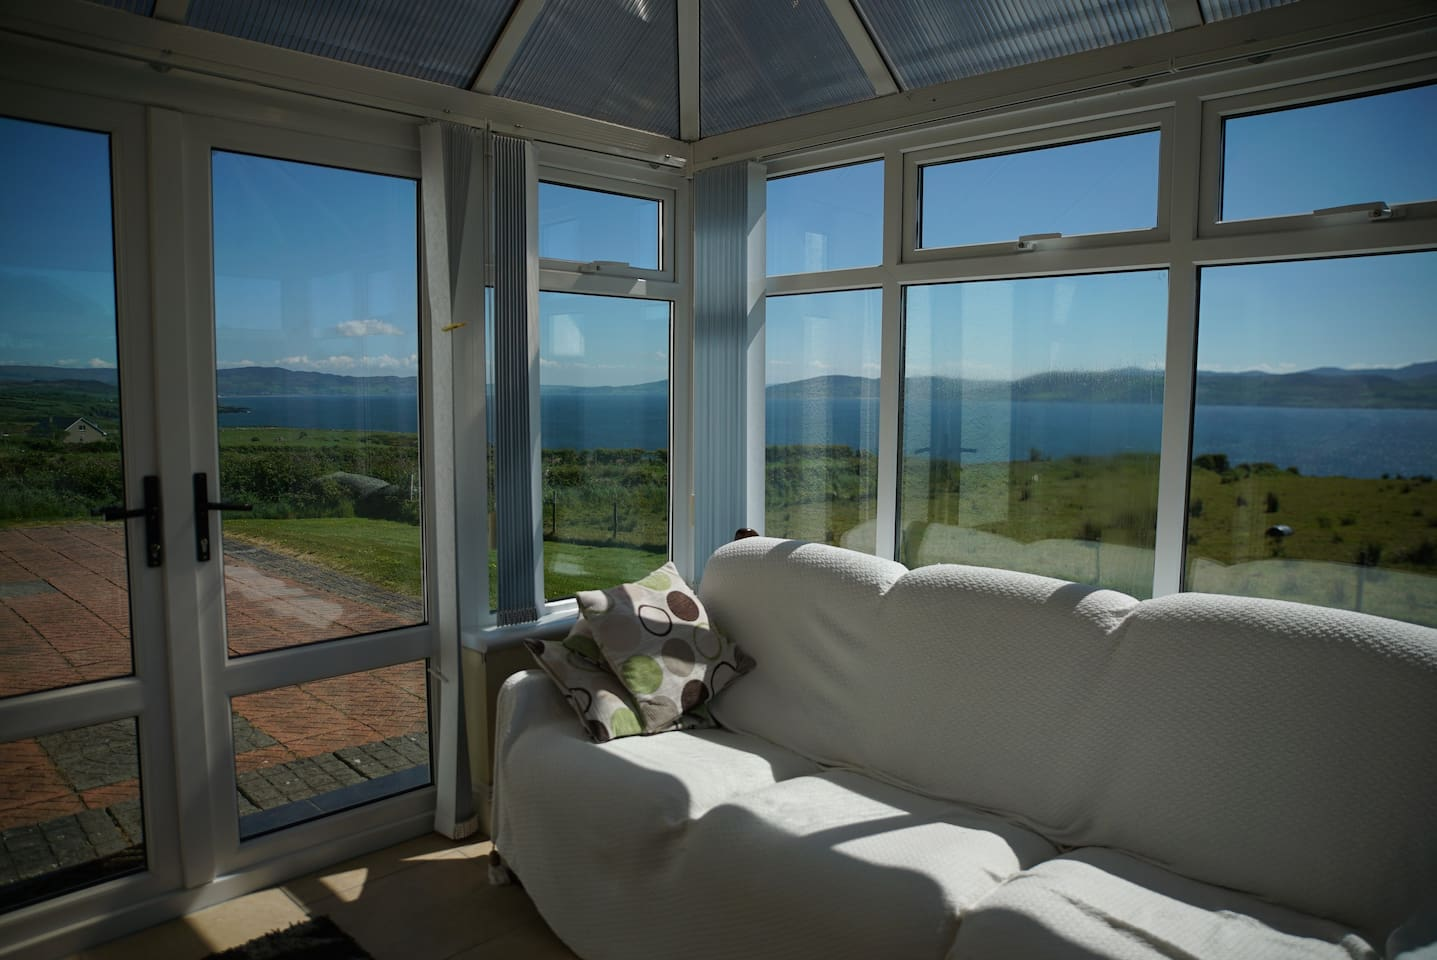 Conservatory overlooking Lough Swilly